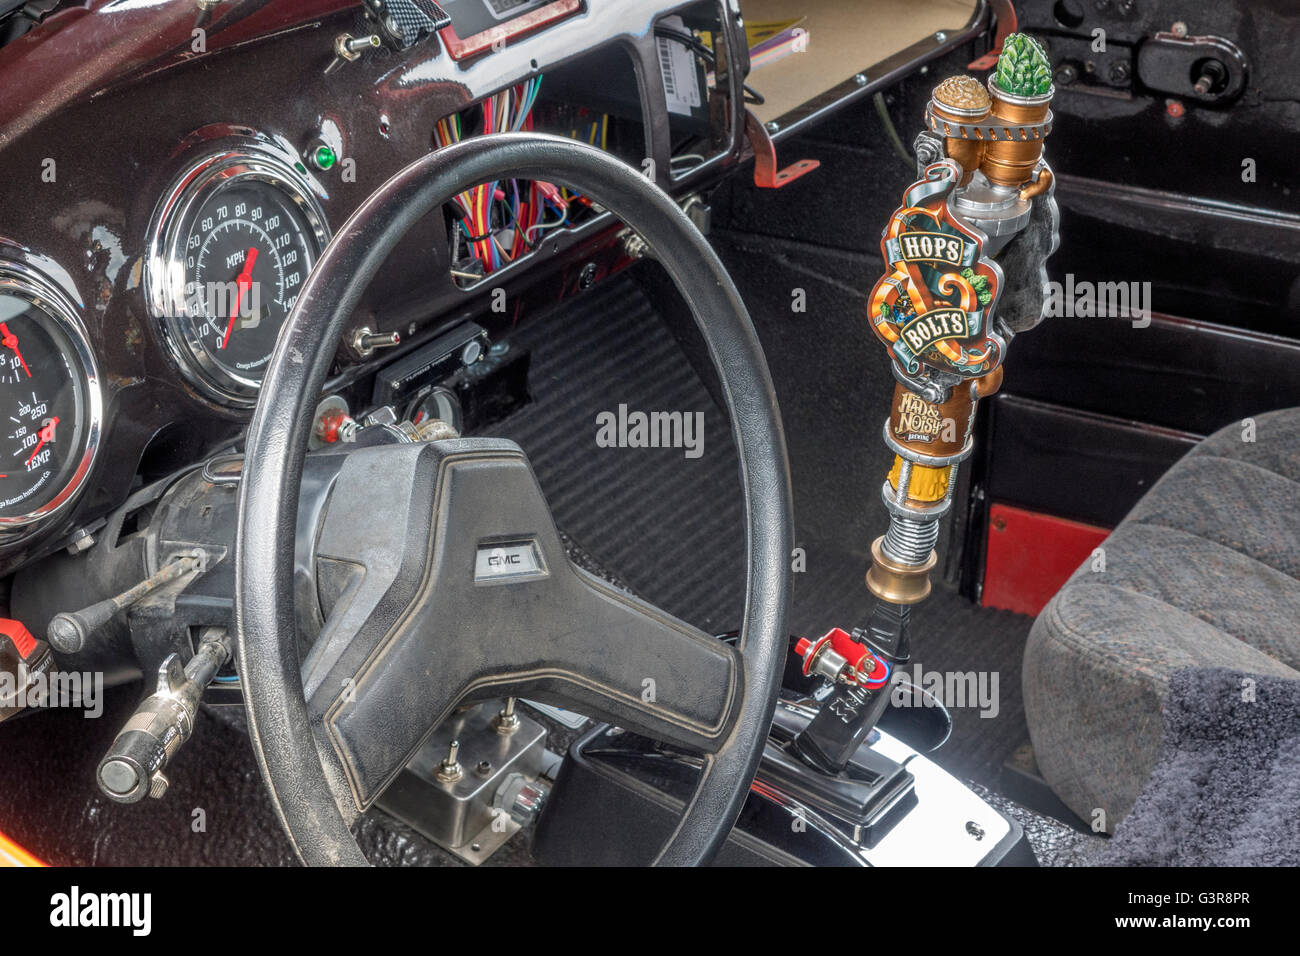 Close Up Inside Of A Rat Rod Truck With A Custom Beer Tap Gear Stick Shifter, Still A Work In Progress - Stock Image